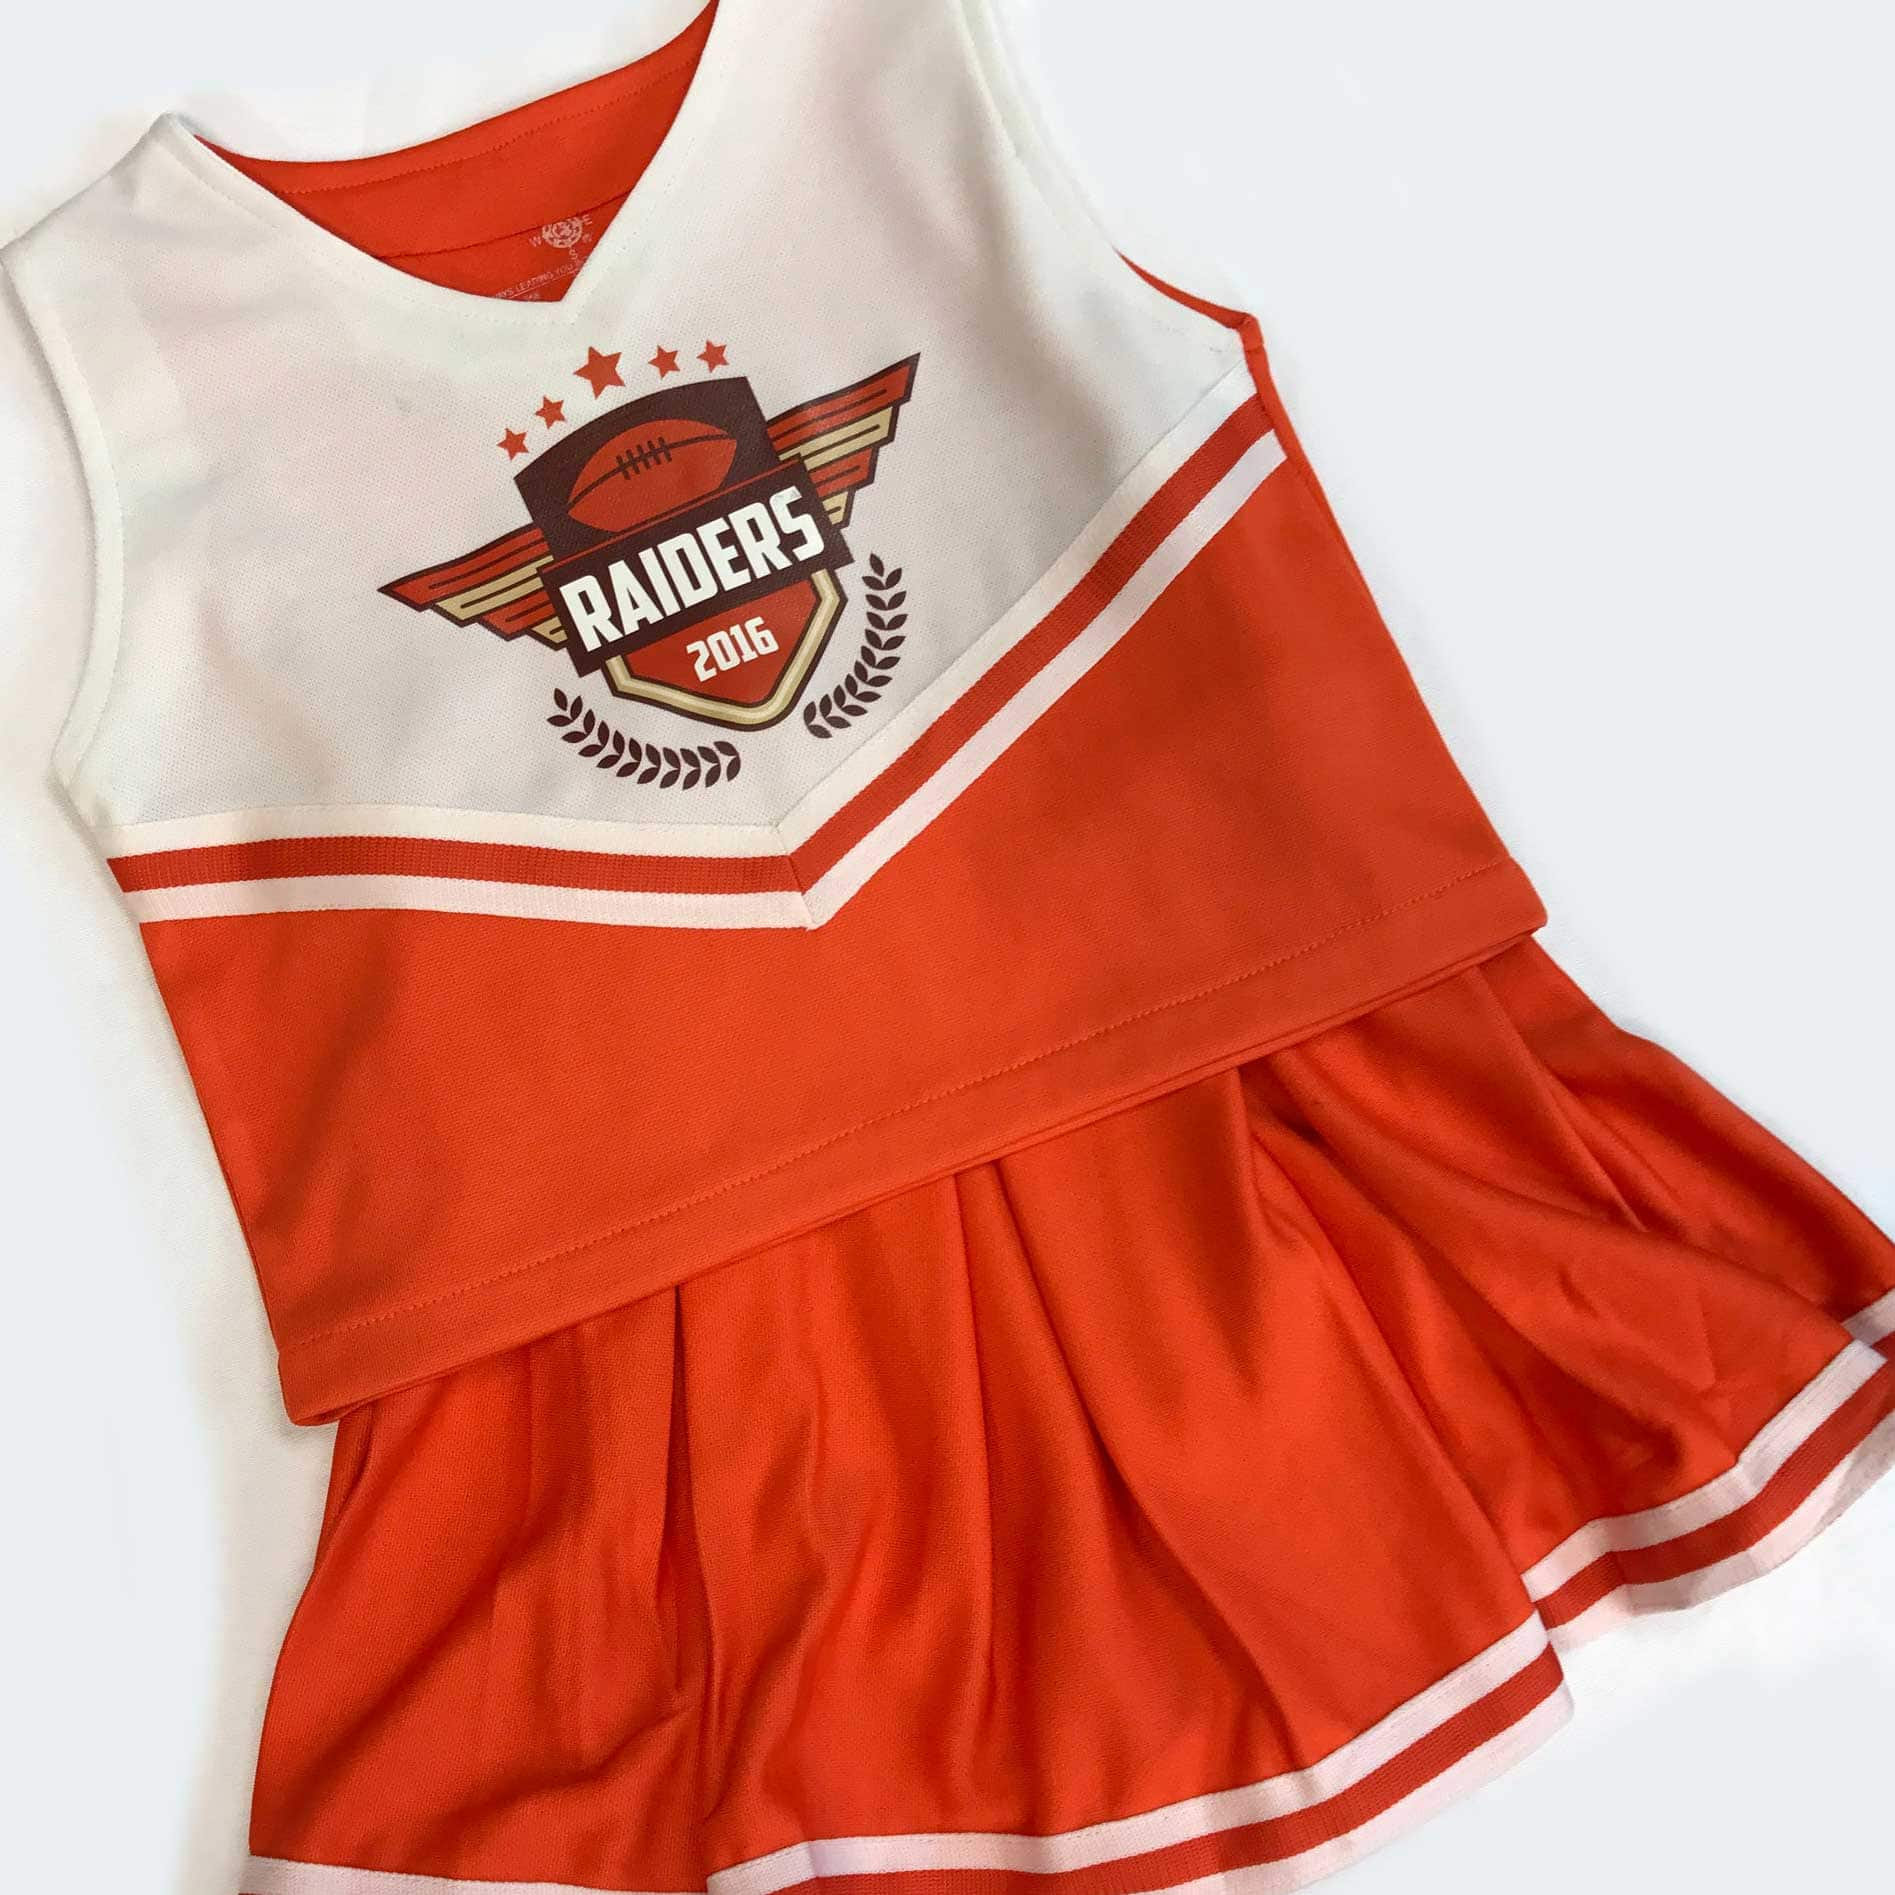 team-cheerleader-outfit